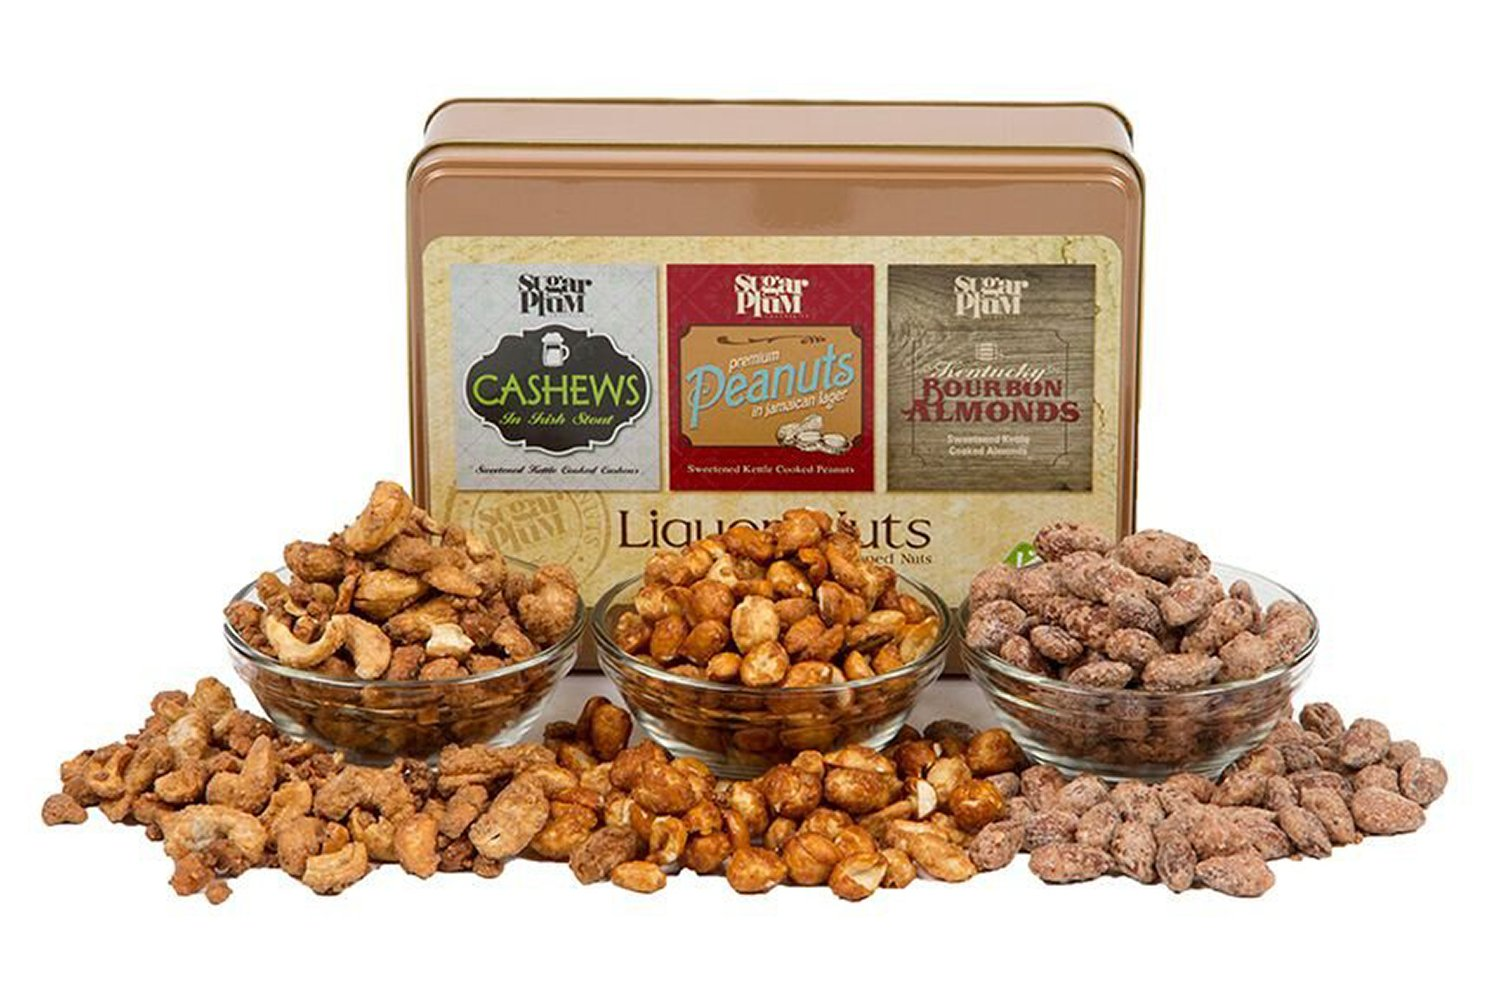 Liquor Nuts Tin - Beer & Whiskey Flavored - Gourmet Food Nuts Gift Basket for Holiday or Anytime, 16oz - Sugar Plum Chocolates by Sugar Plum Chocolates